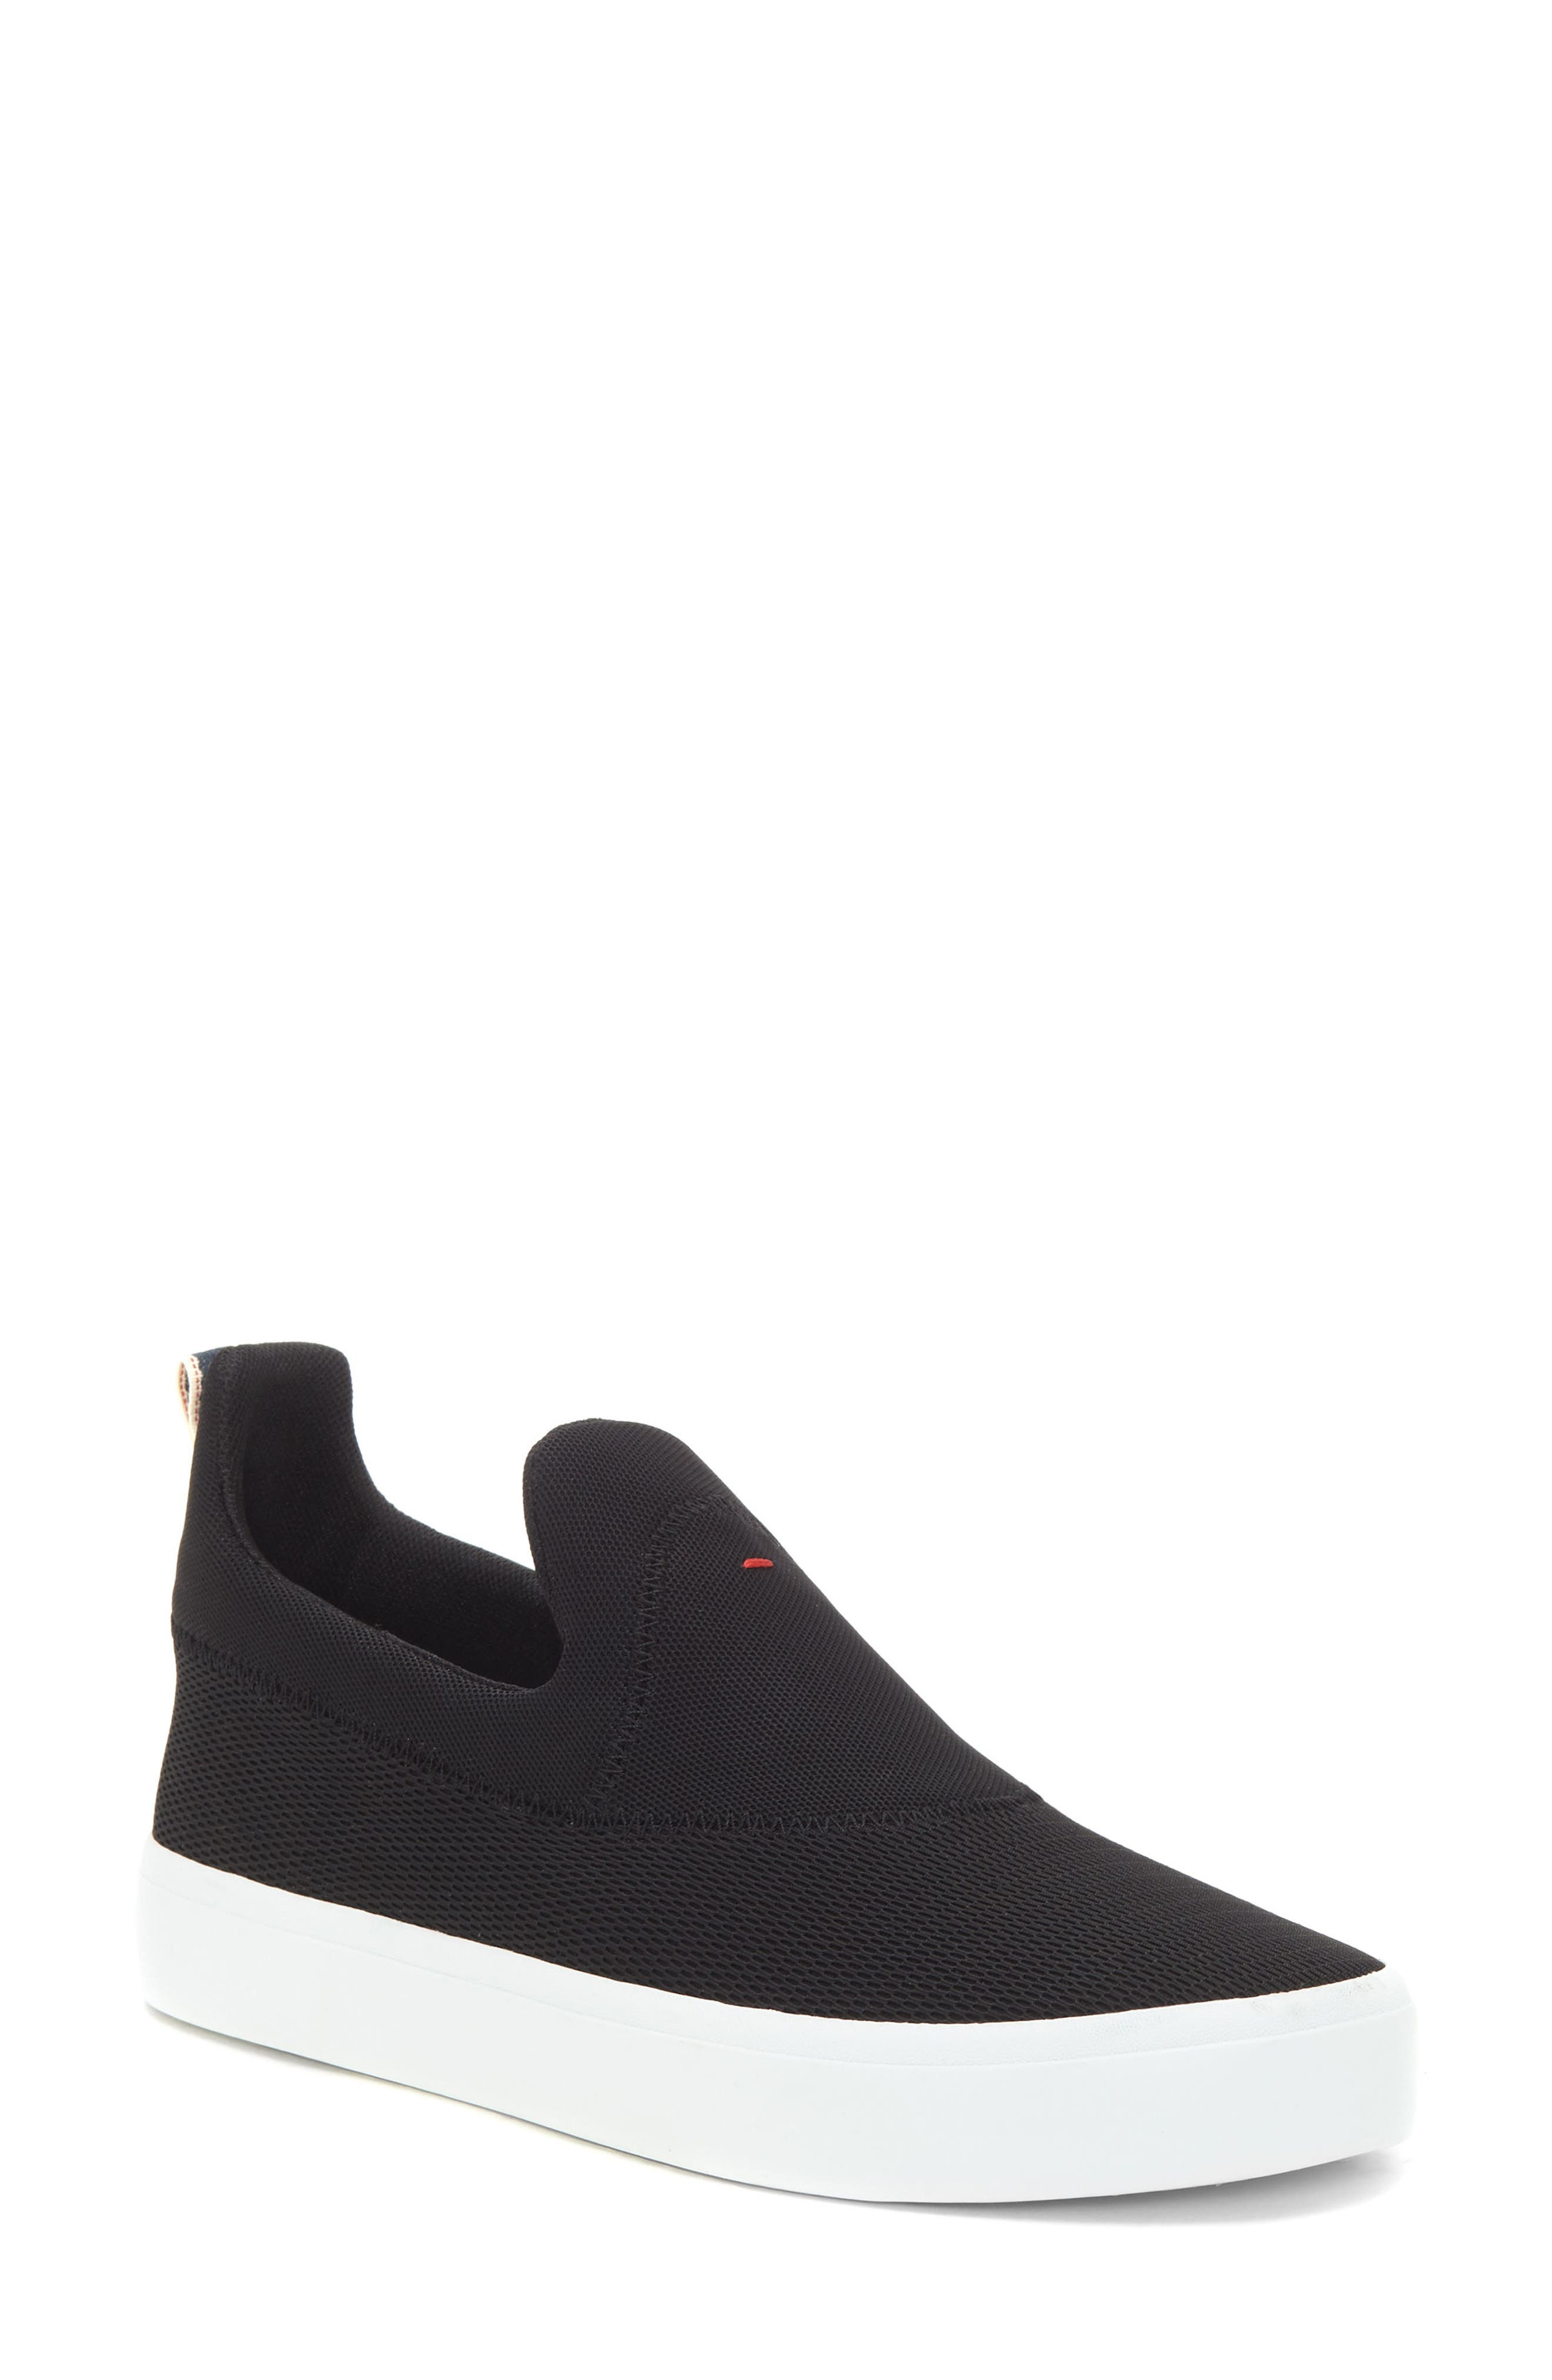 Daire Slip-On Sneaker,                         Main,                         color,